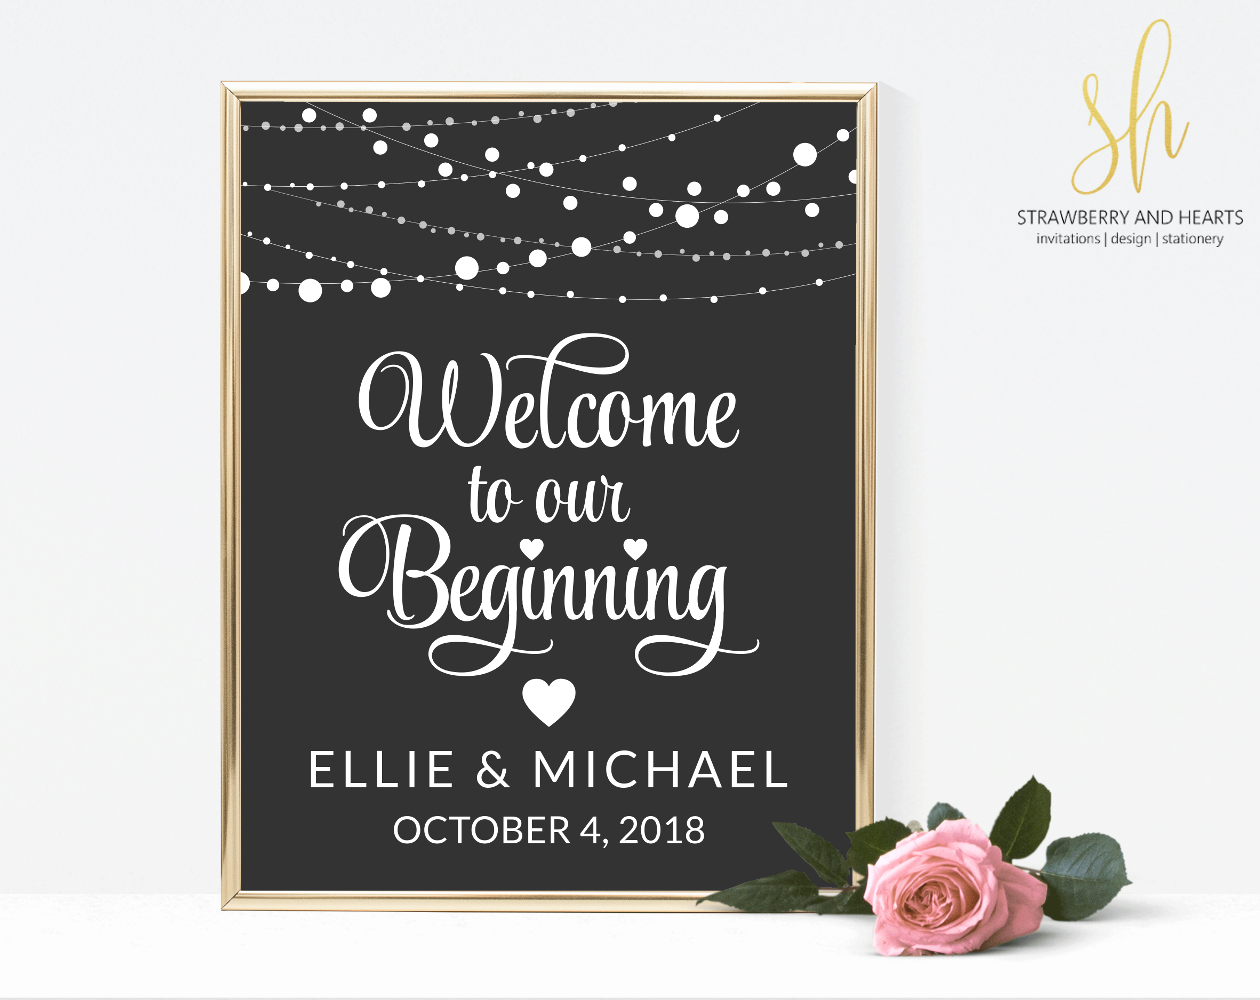 Wedding decorations using pallets october 2018 String Of Lights Welcome Sign  Wedding Signage  Pinterest